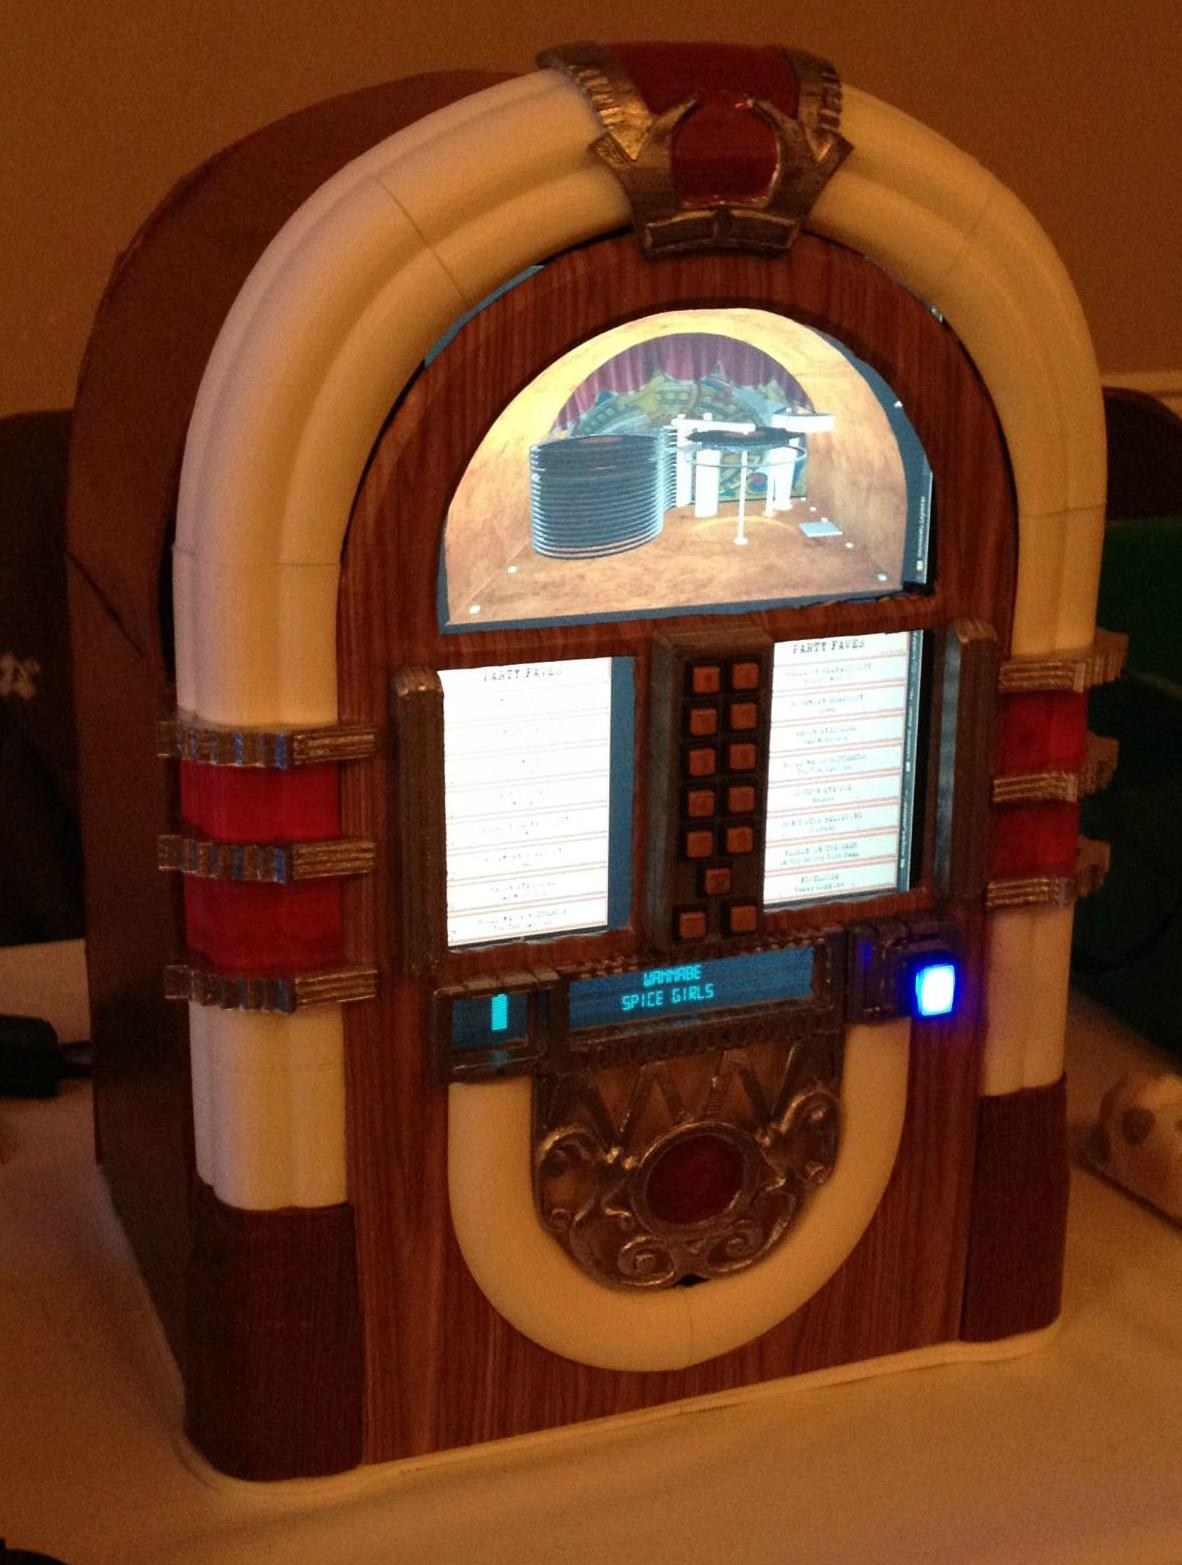 3D Metal Printing >> The Joint Is Jumpin'! Randy Cavanagh Builds a Rockin' 3D Printed Jukebox   3DPrint.com   The ...